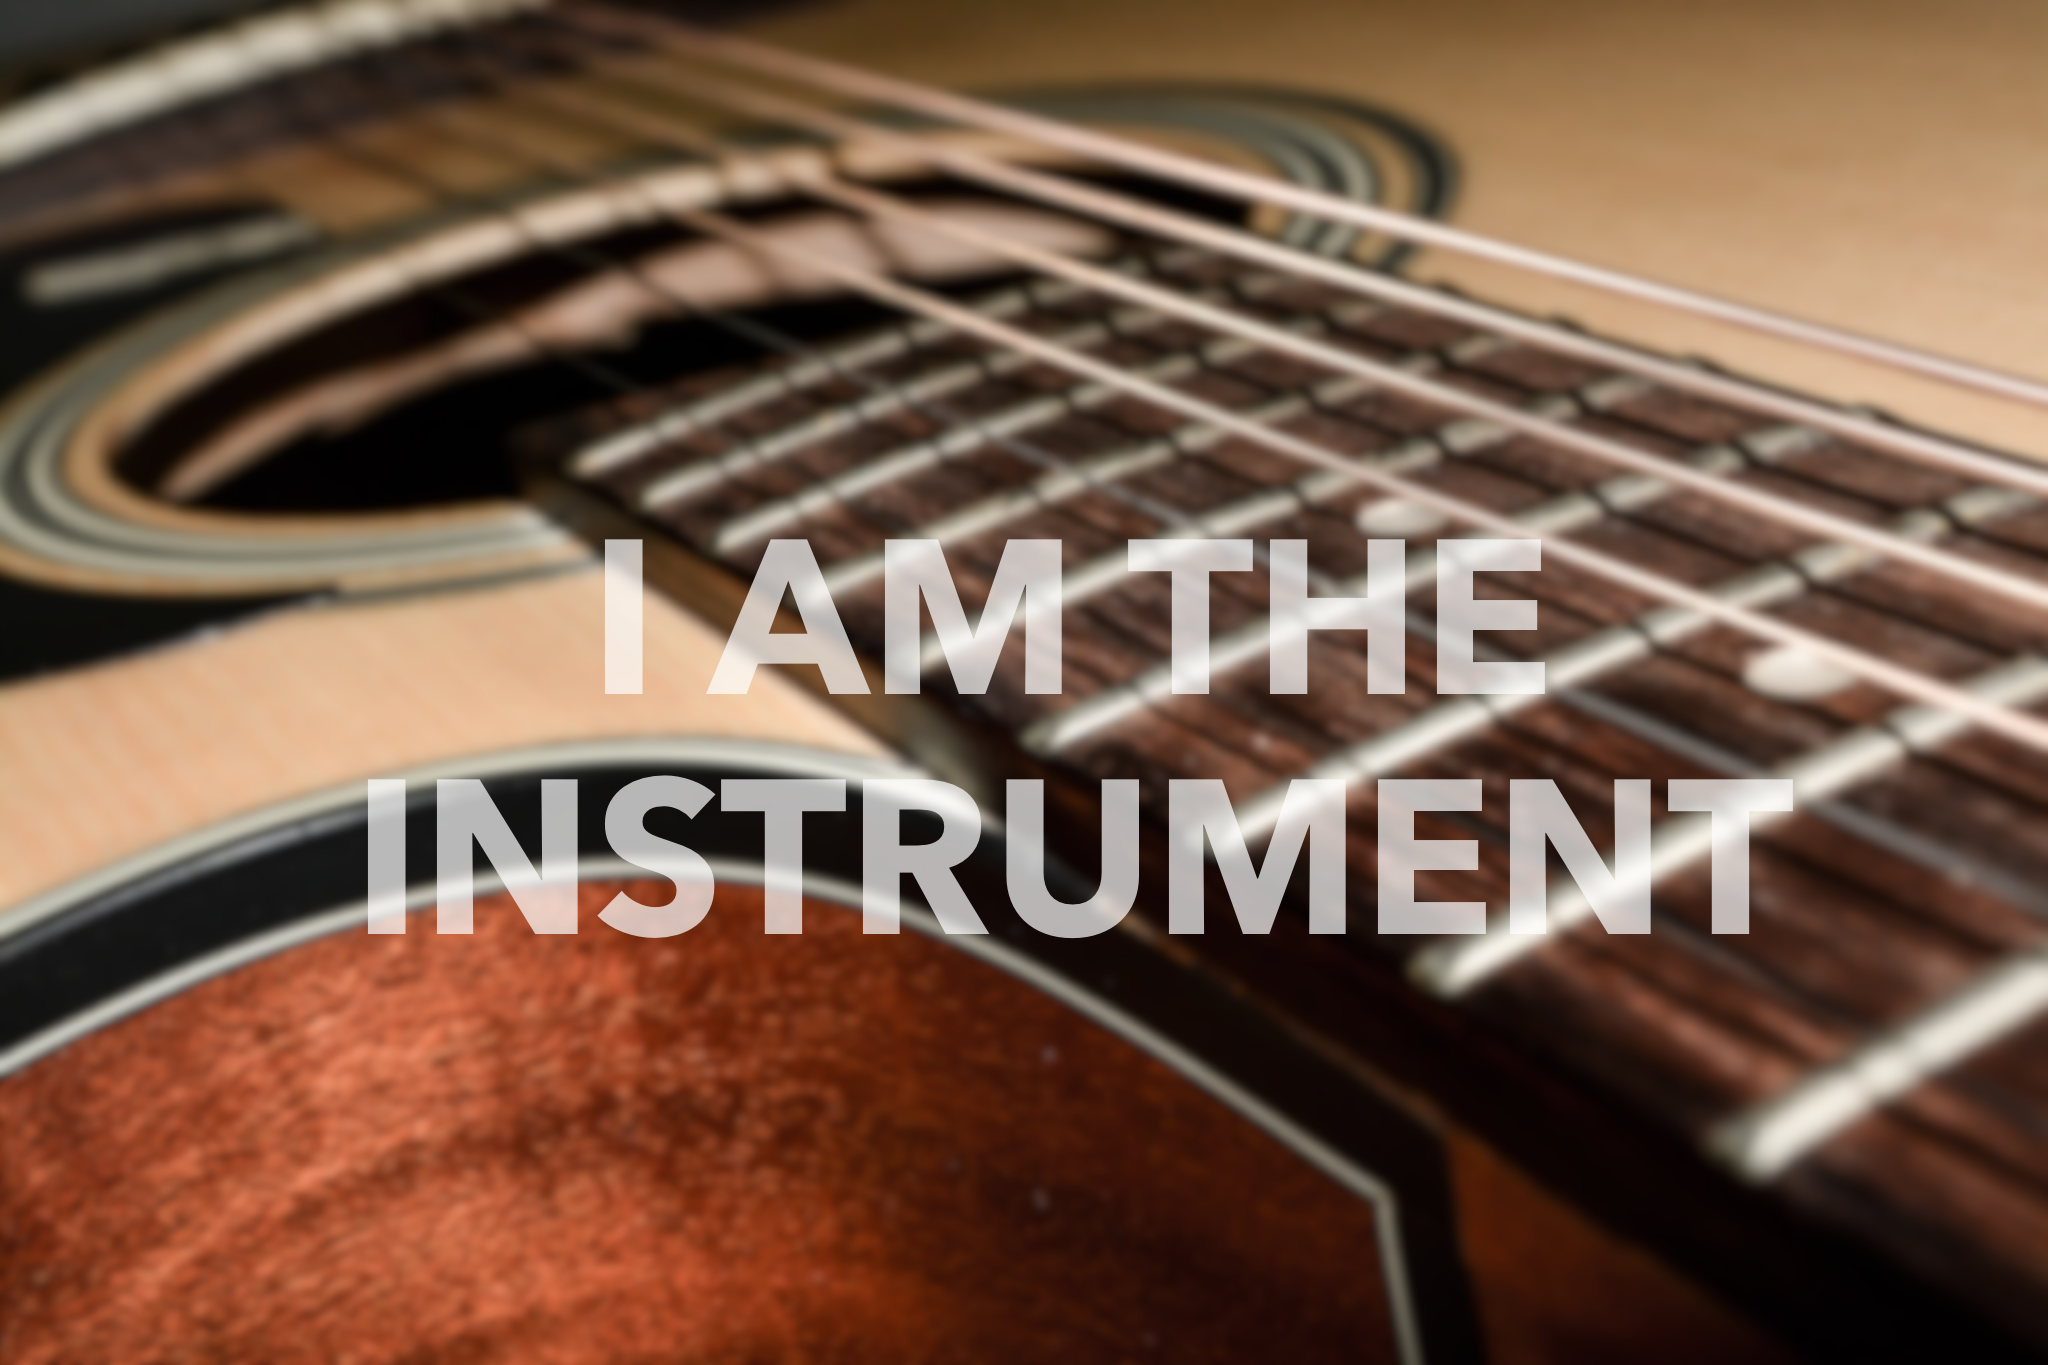 I AM THE INSTRUMENT